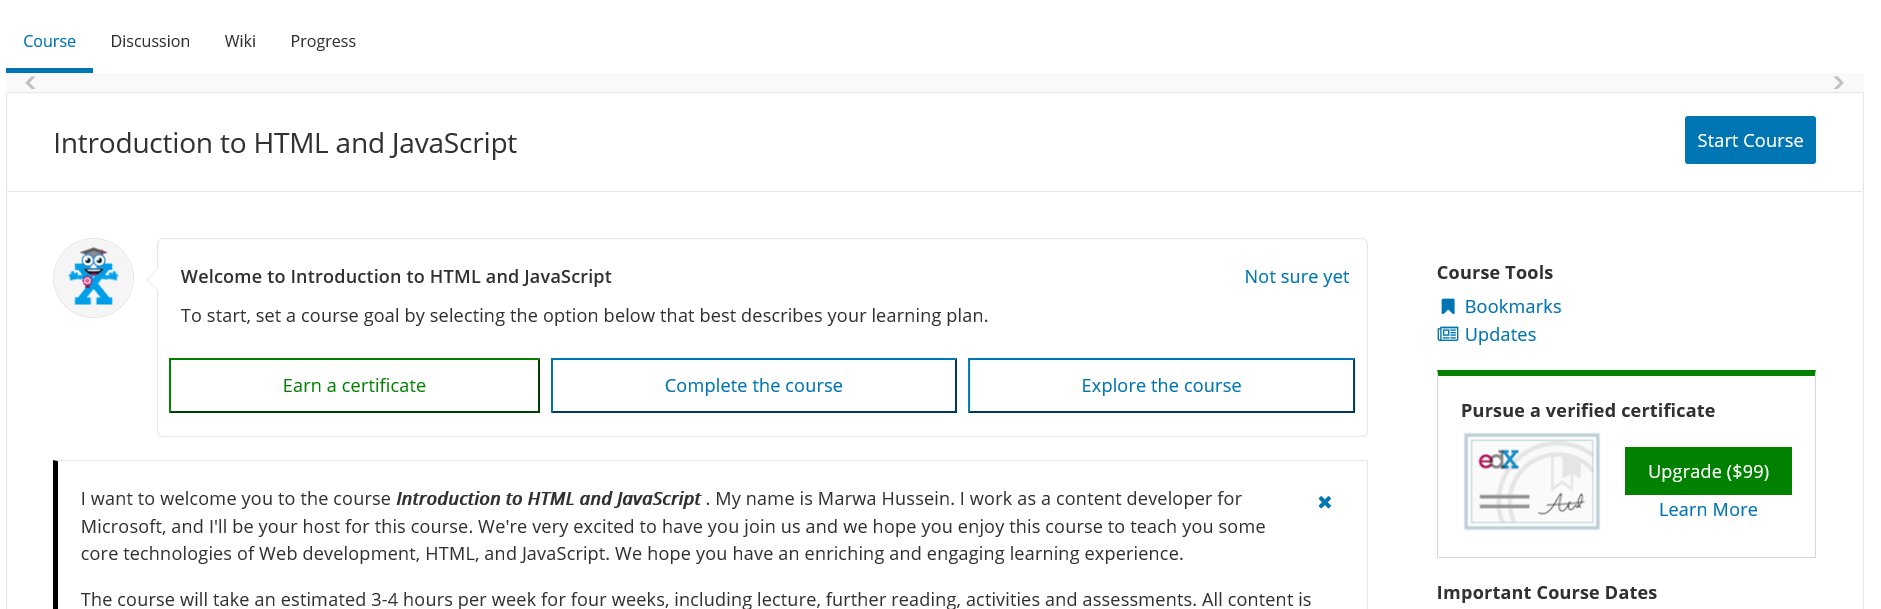 Course Not Available Training Certification And Program Support